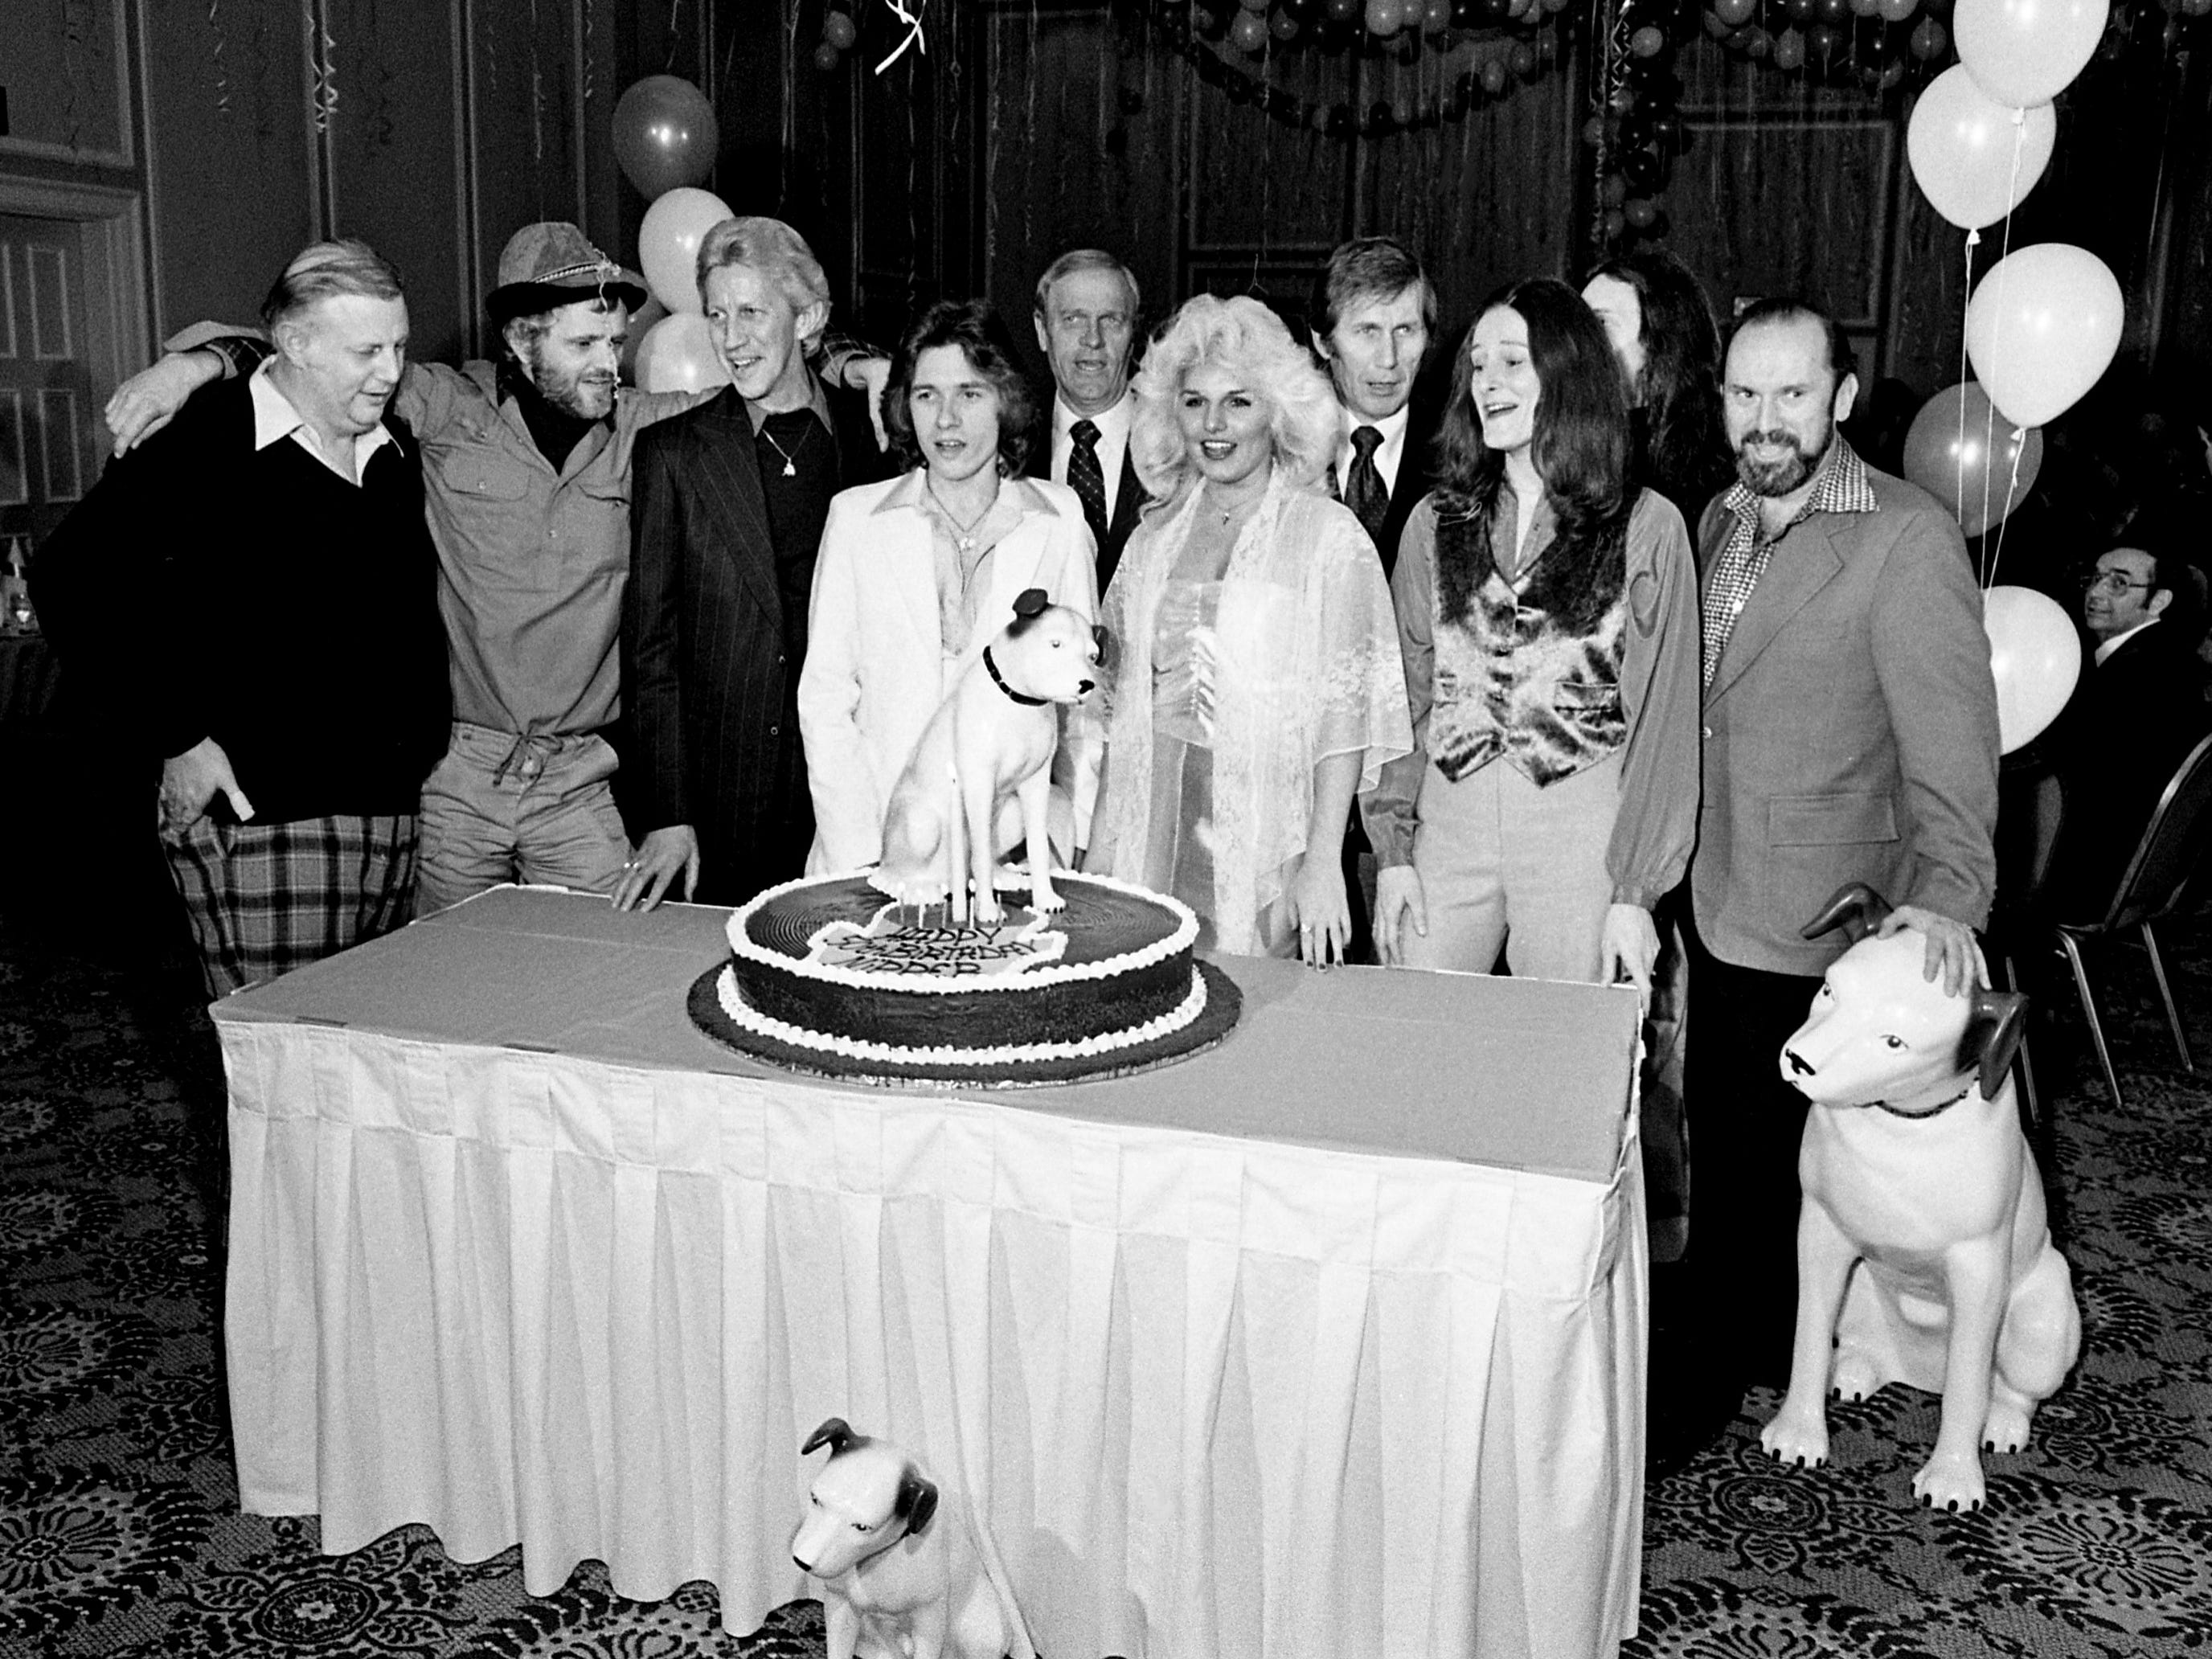 "Some of RCA Records' sales and promotion staff, national executives and recording artists gather around the cake to celebrate RCA's 50th anniversary during a gala dinner at the Opryland Hotel on Jan. 3, 1979. The giant corporation dates its entry into the record business to Jan. 4, 1929, when the Radio Corporation of America first acquired the Victor Talking Machine Company and its famous ""Nipper"" trademark."